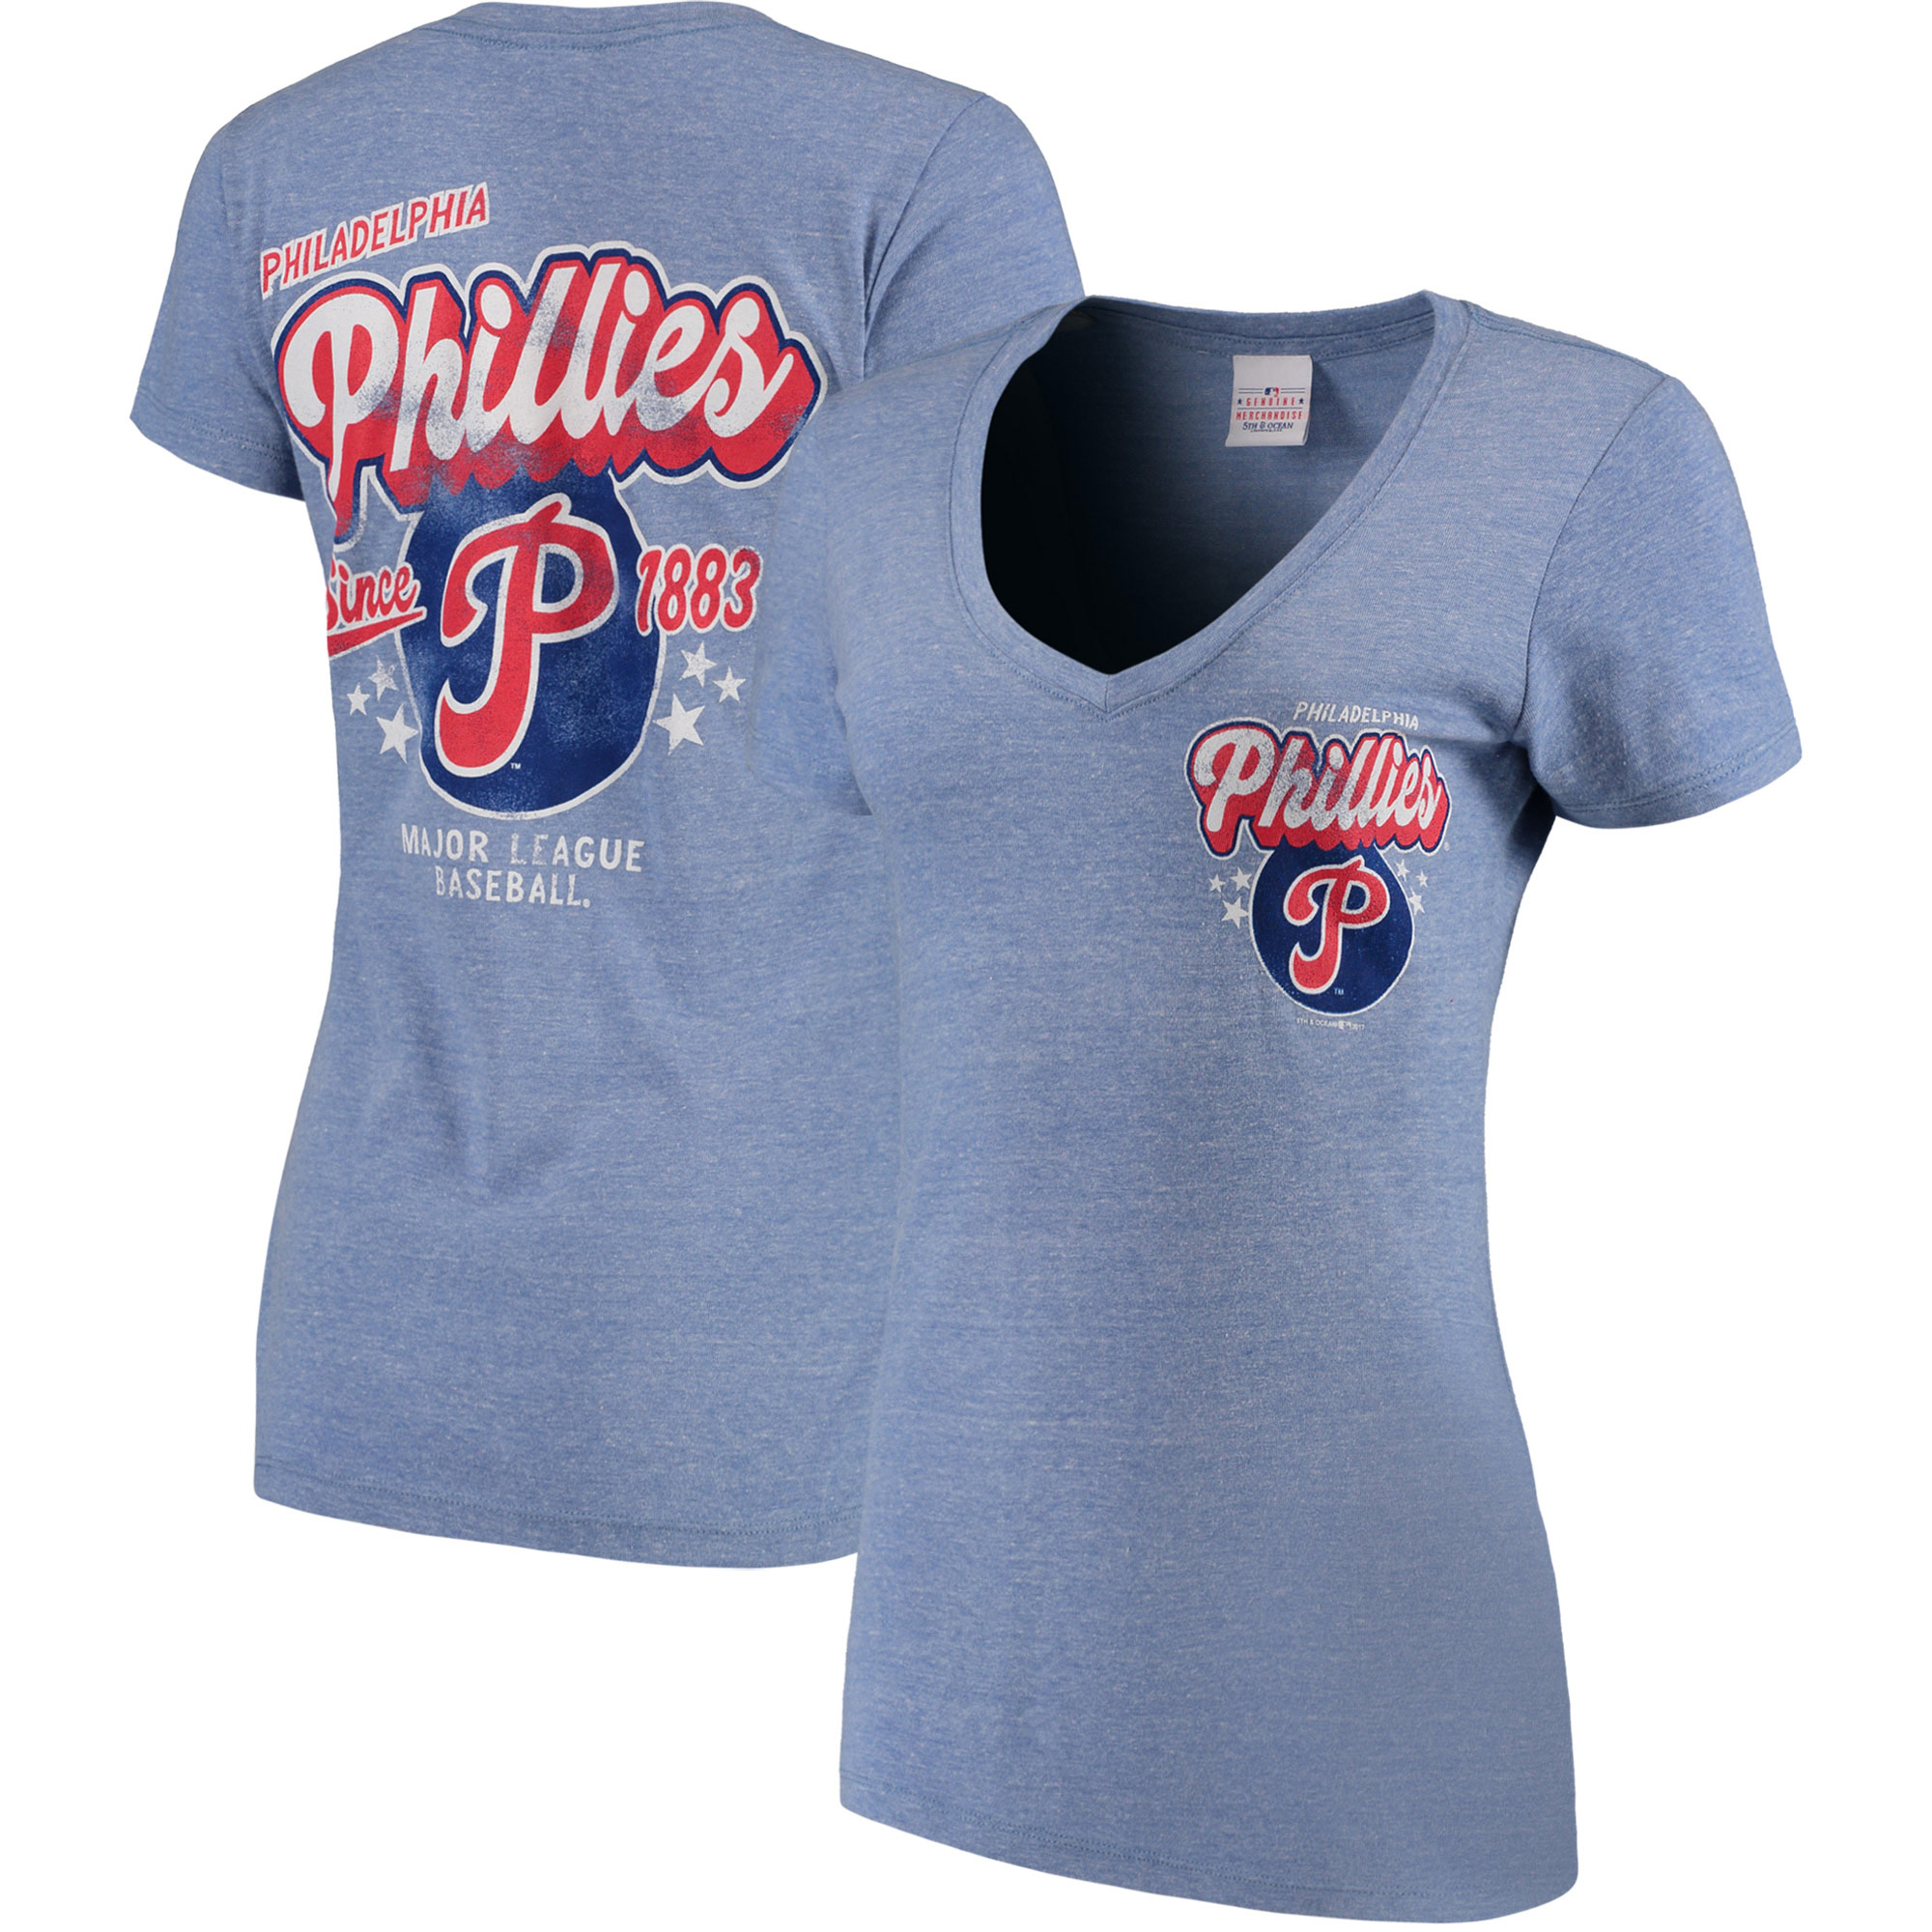 Philadelphia Phillies 5th & Ocean by New Era Women's Cooperstown Collection Tri-Blend V-Neck T-Shirt - Heathered Light Blue